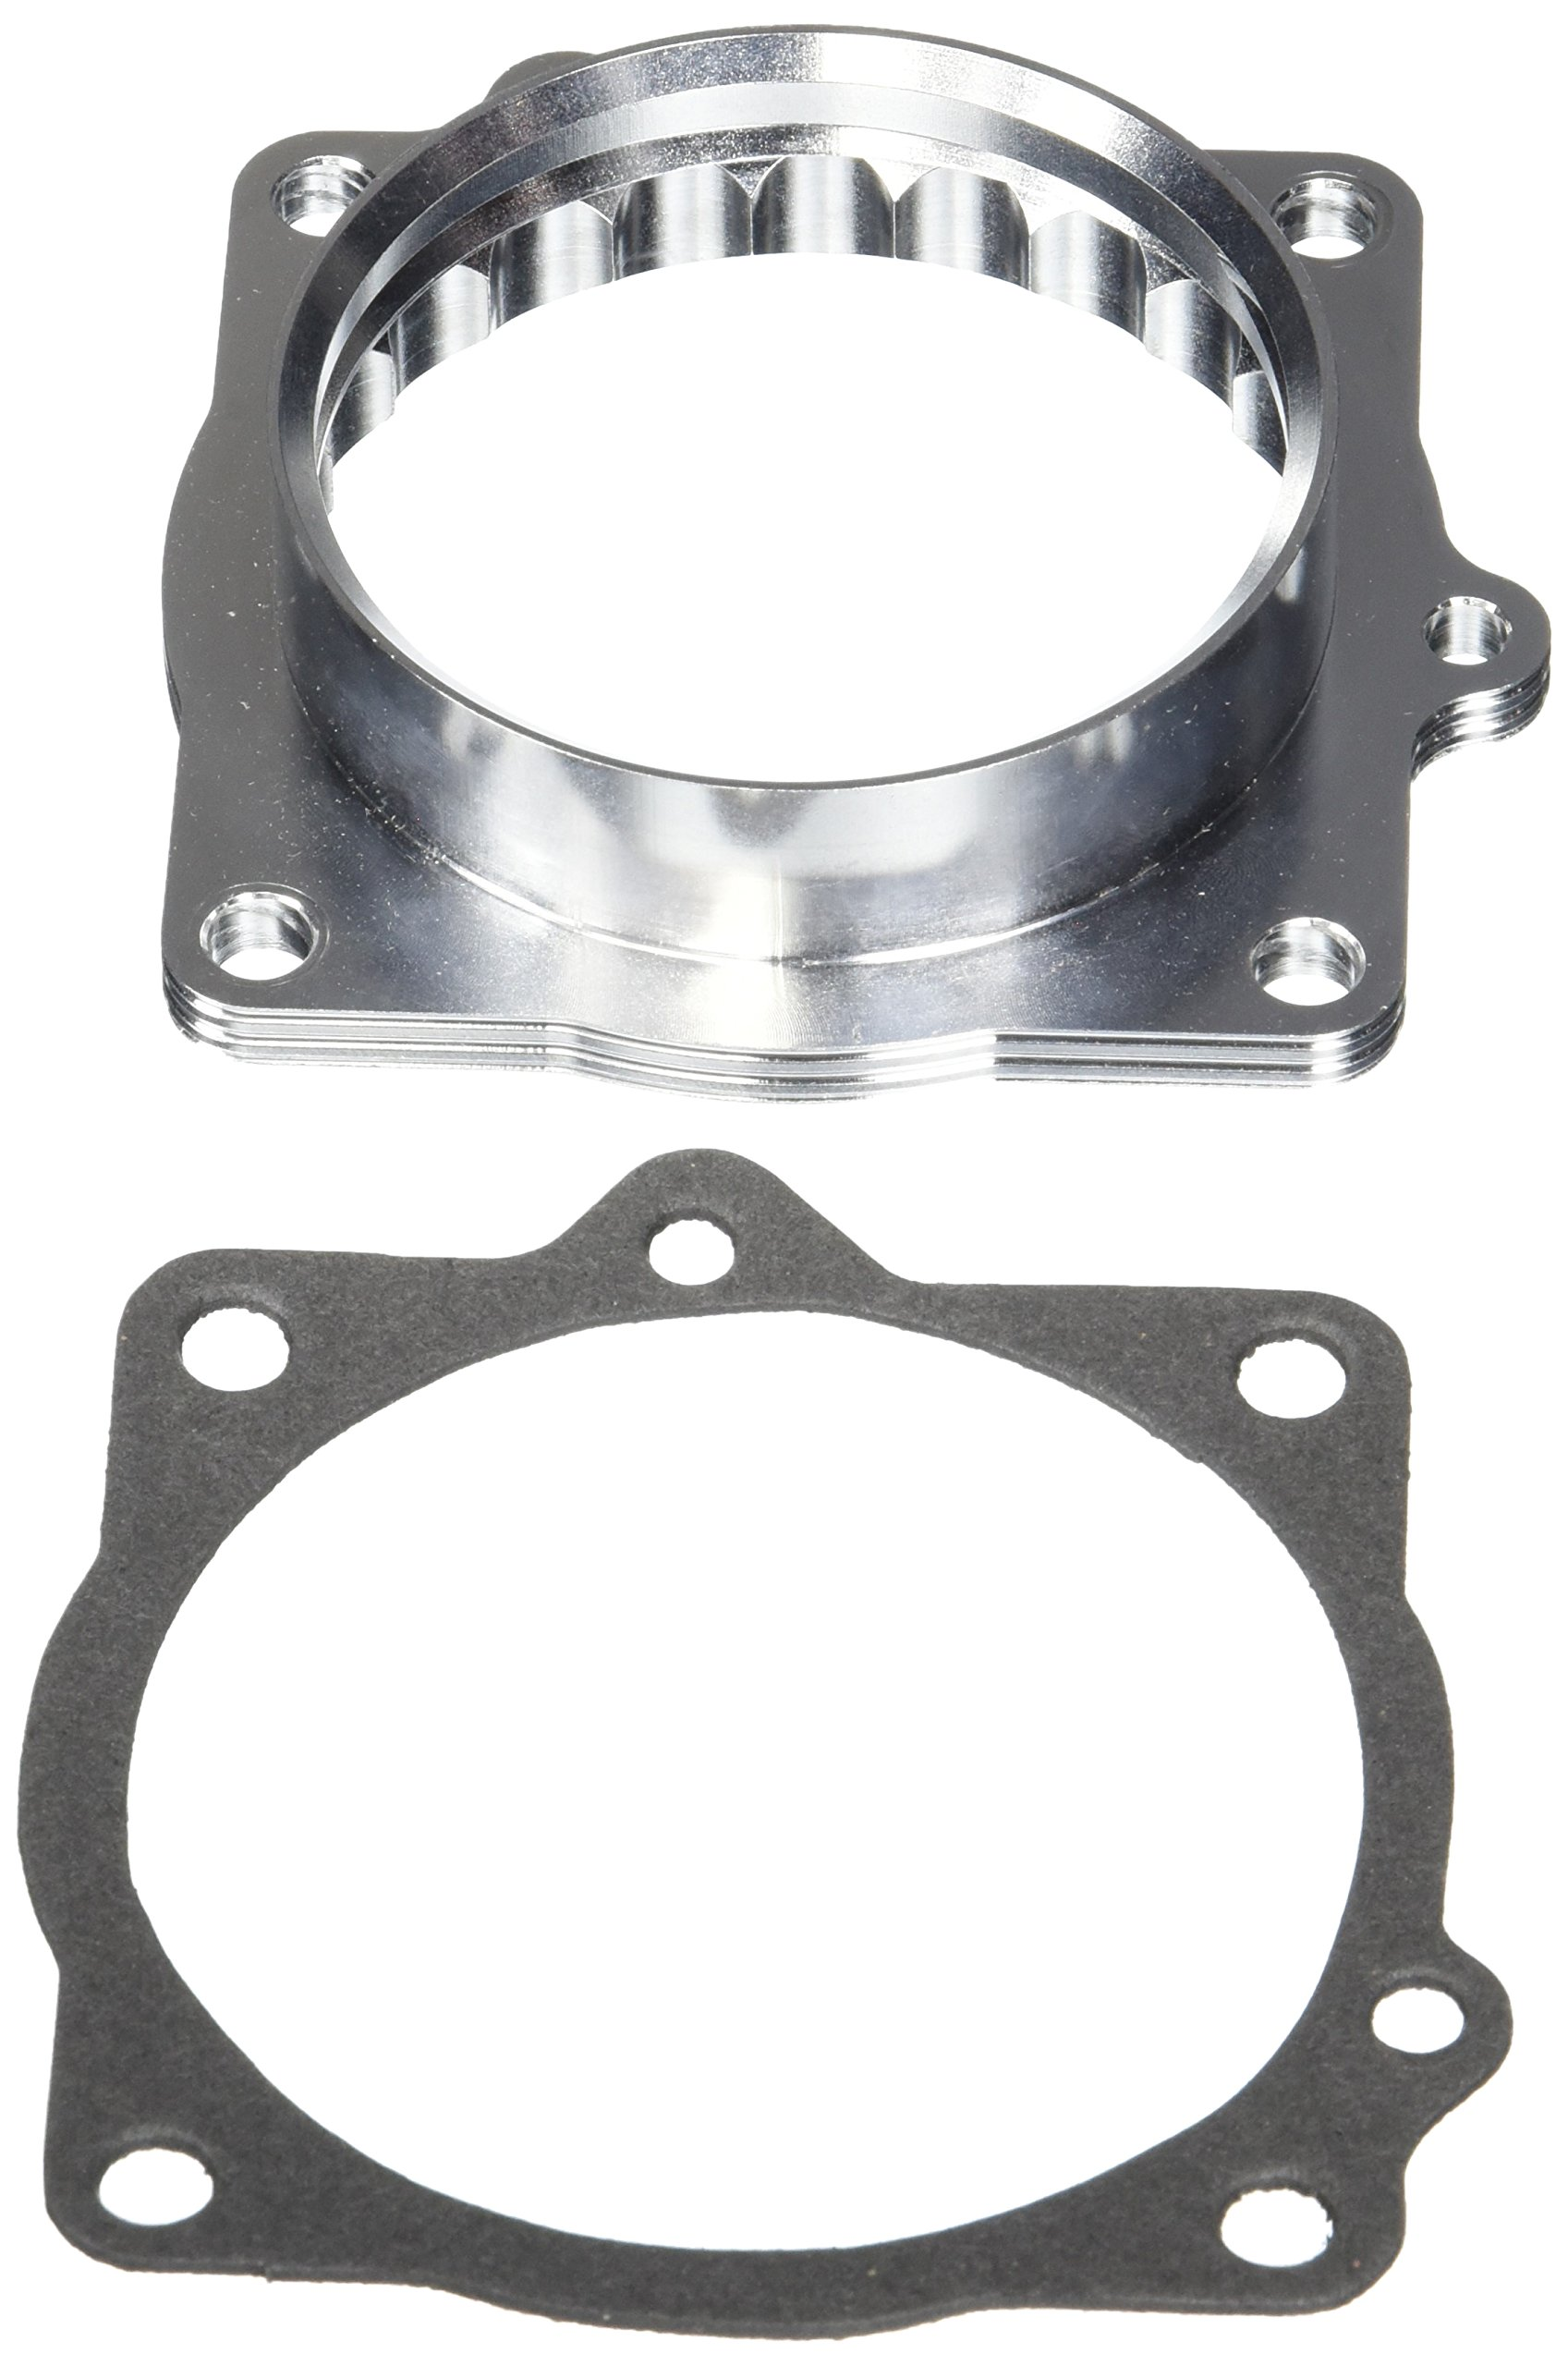 Taylor Cable 57044 Helix Power Tower Plus Throttle Body Spacer